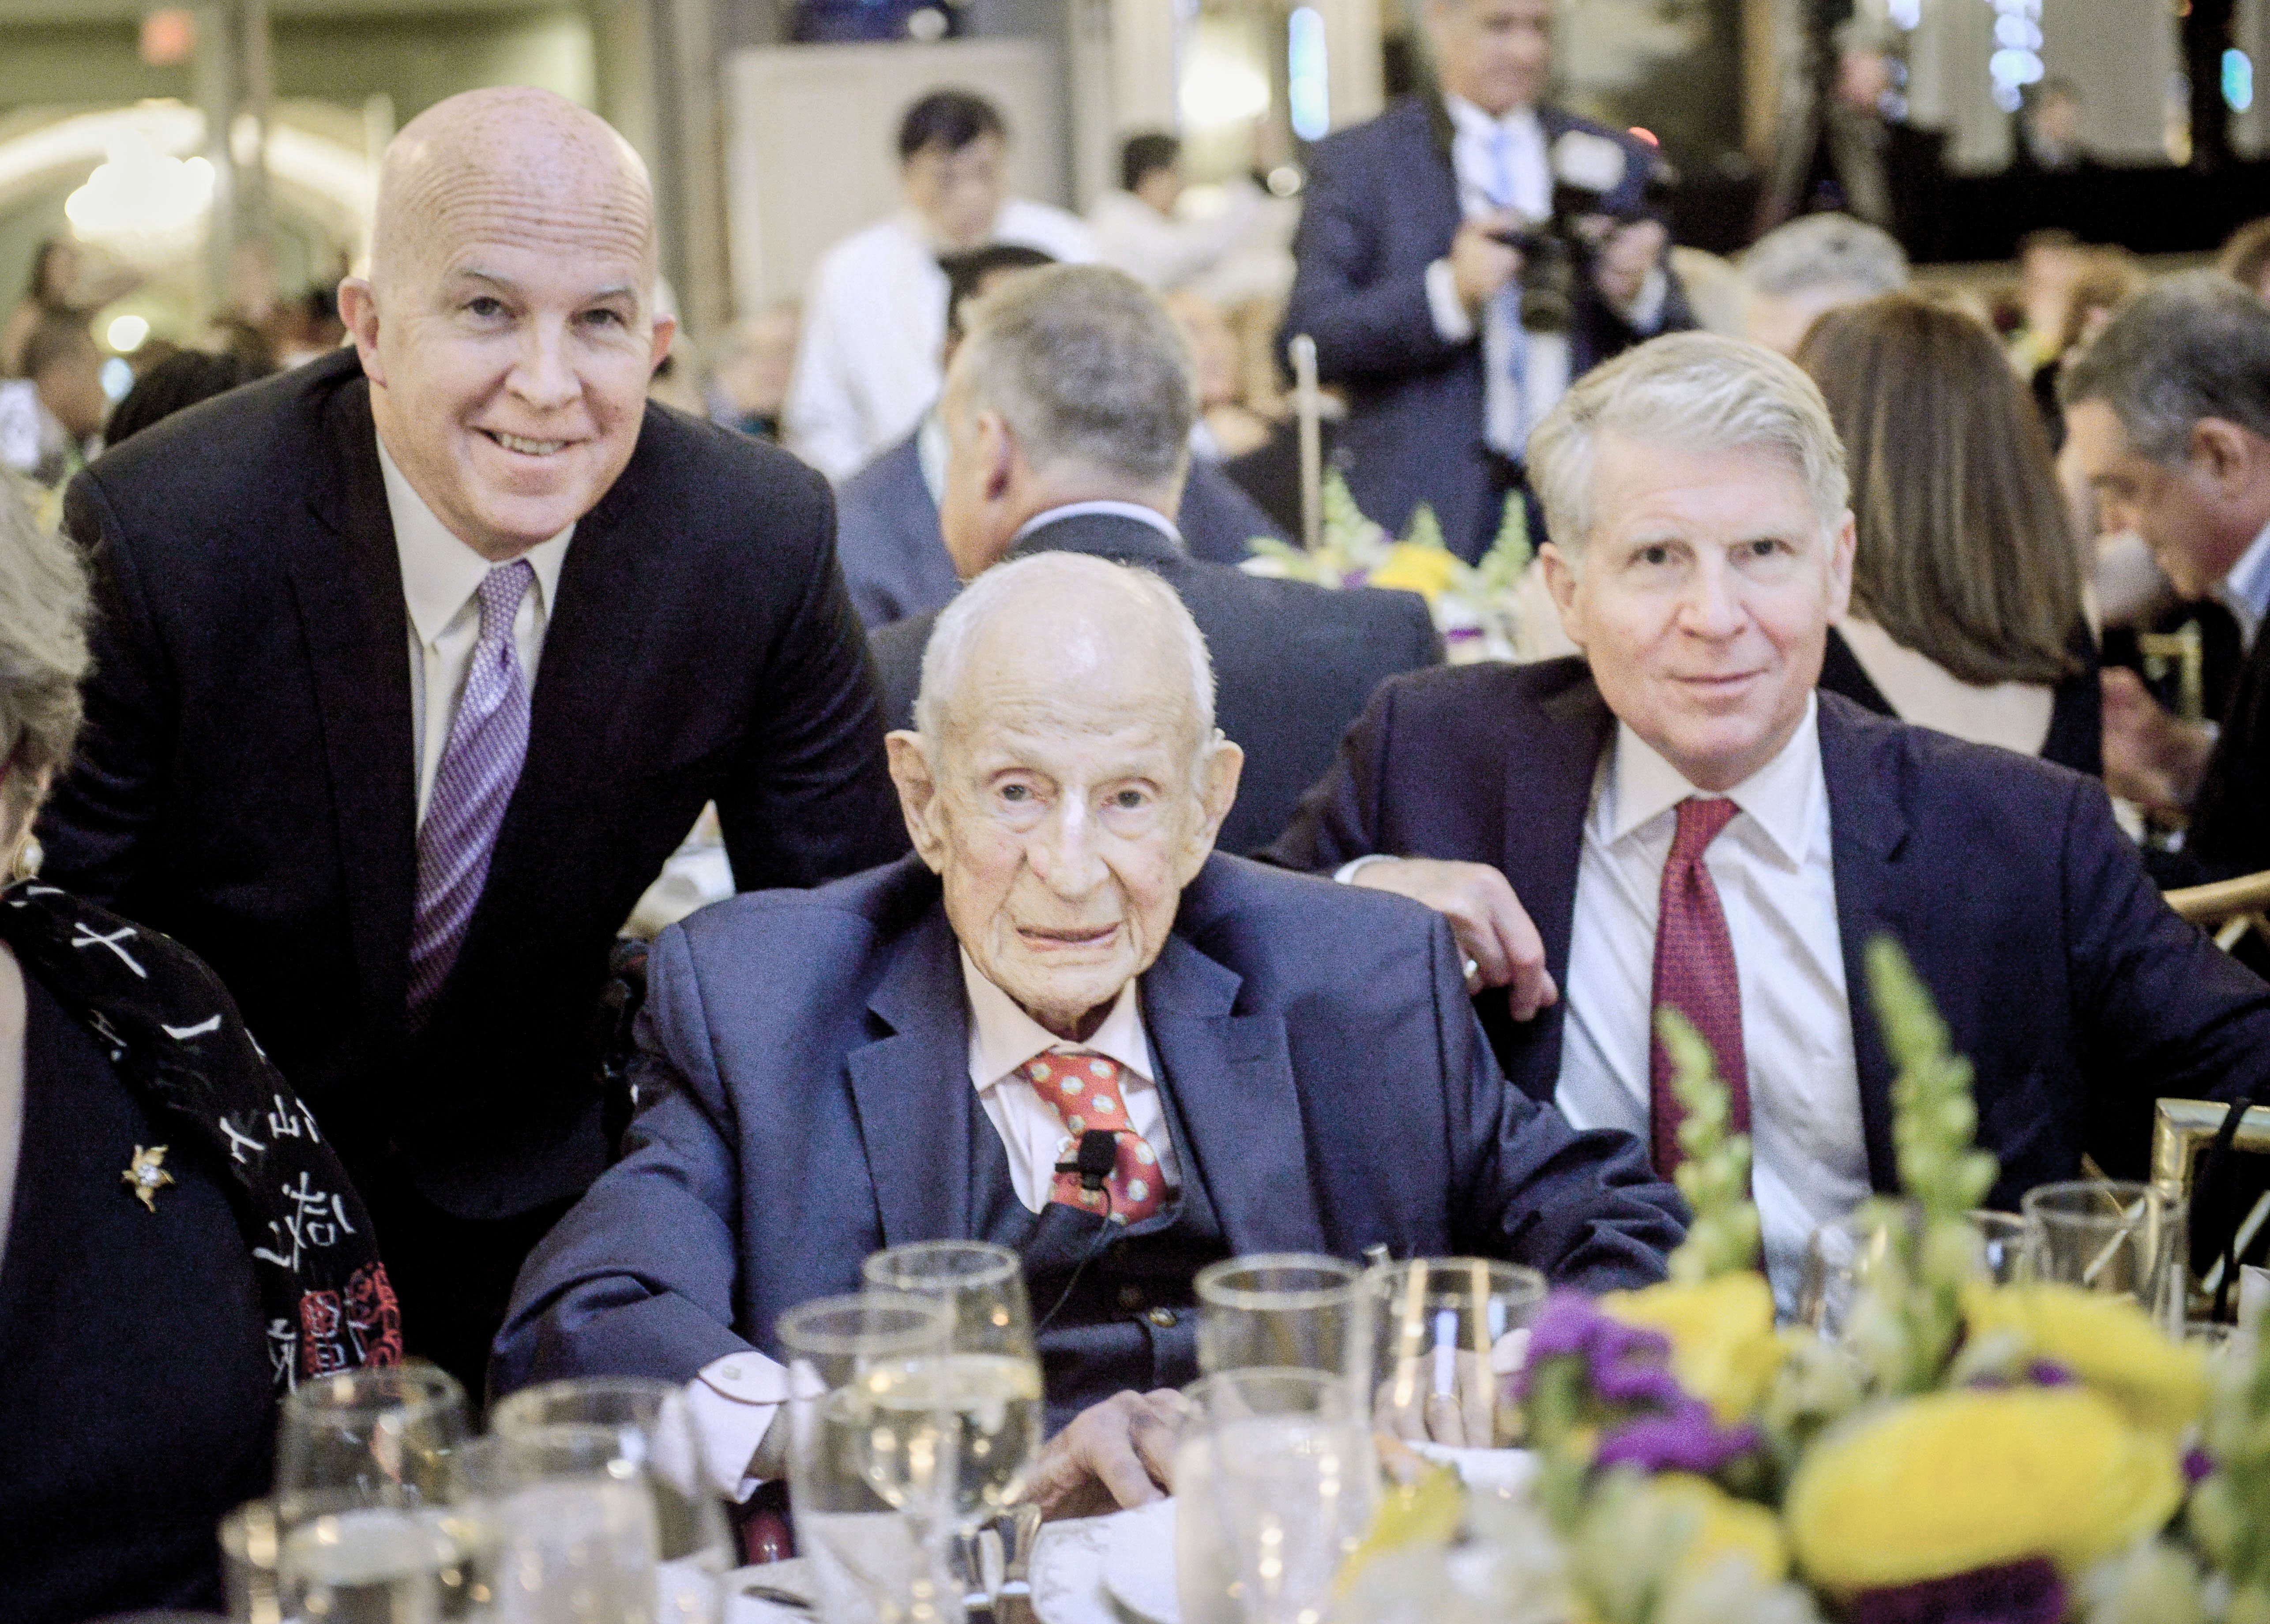 NYPD Police Commissioner James P. O'Neill, left and current District Attorney Cyrus Vance Jr, right, join former Manhattan District Attorney Robert M. Morgenthau at a celebration of his 100th birthday on June 26th, 2019 at the Pierre Hotel in Manhattan. The event was hosted by the Police Athletic League, a charity that Morgenthau chaired for 57 years. (Photo by David Handschuh/NYLJ)